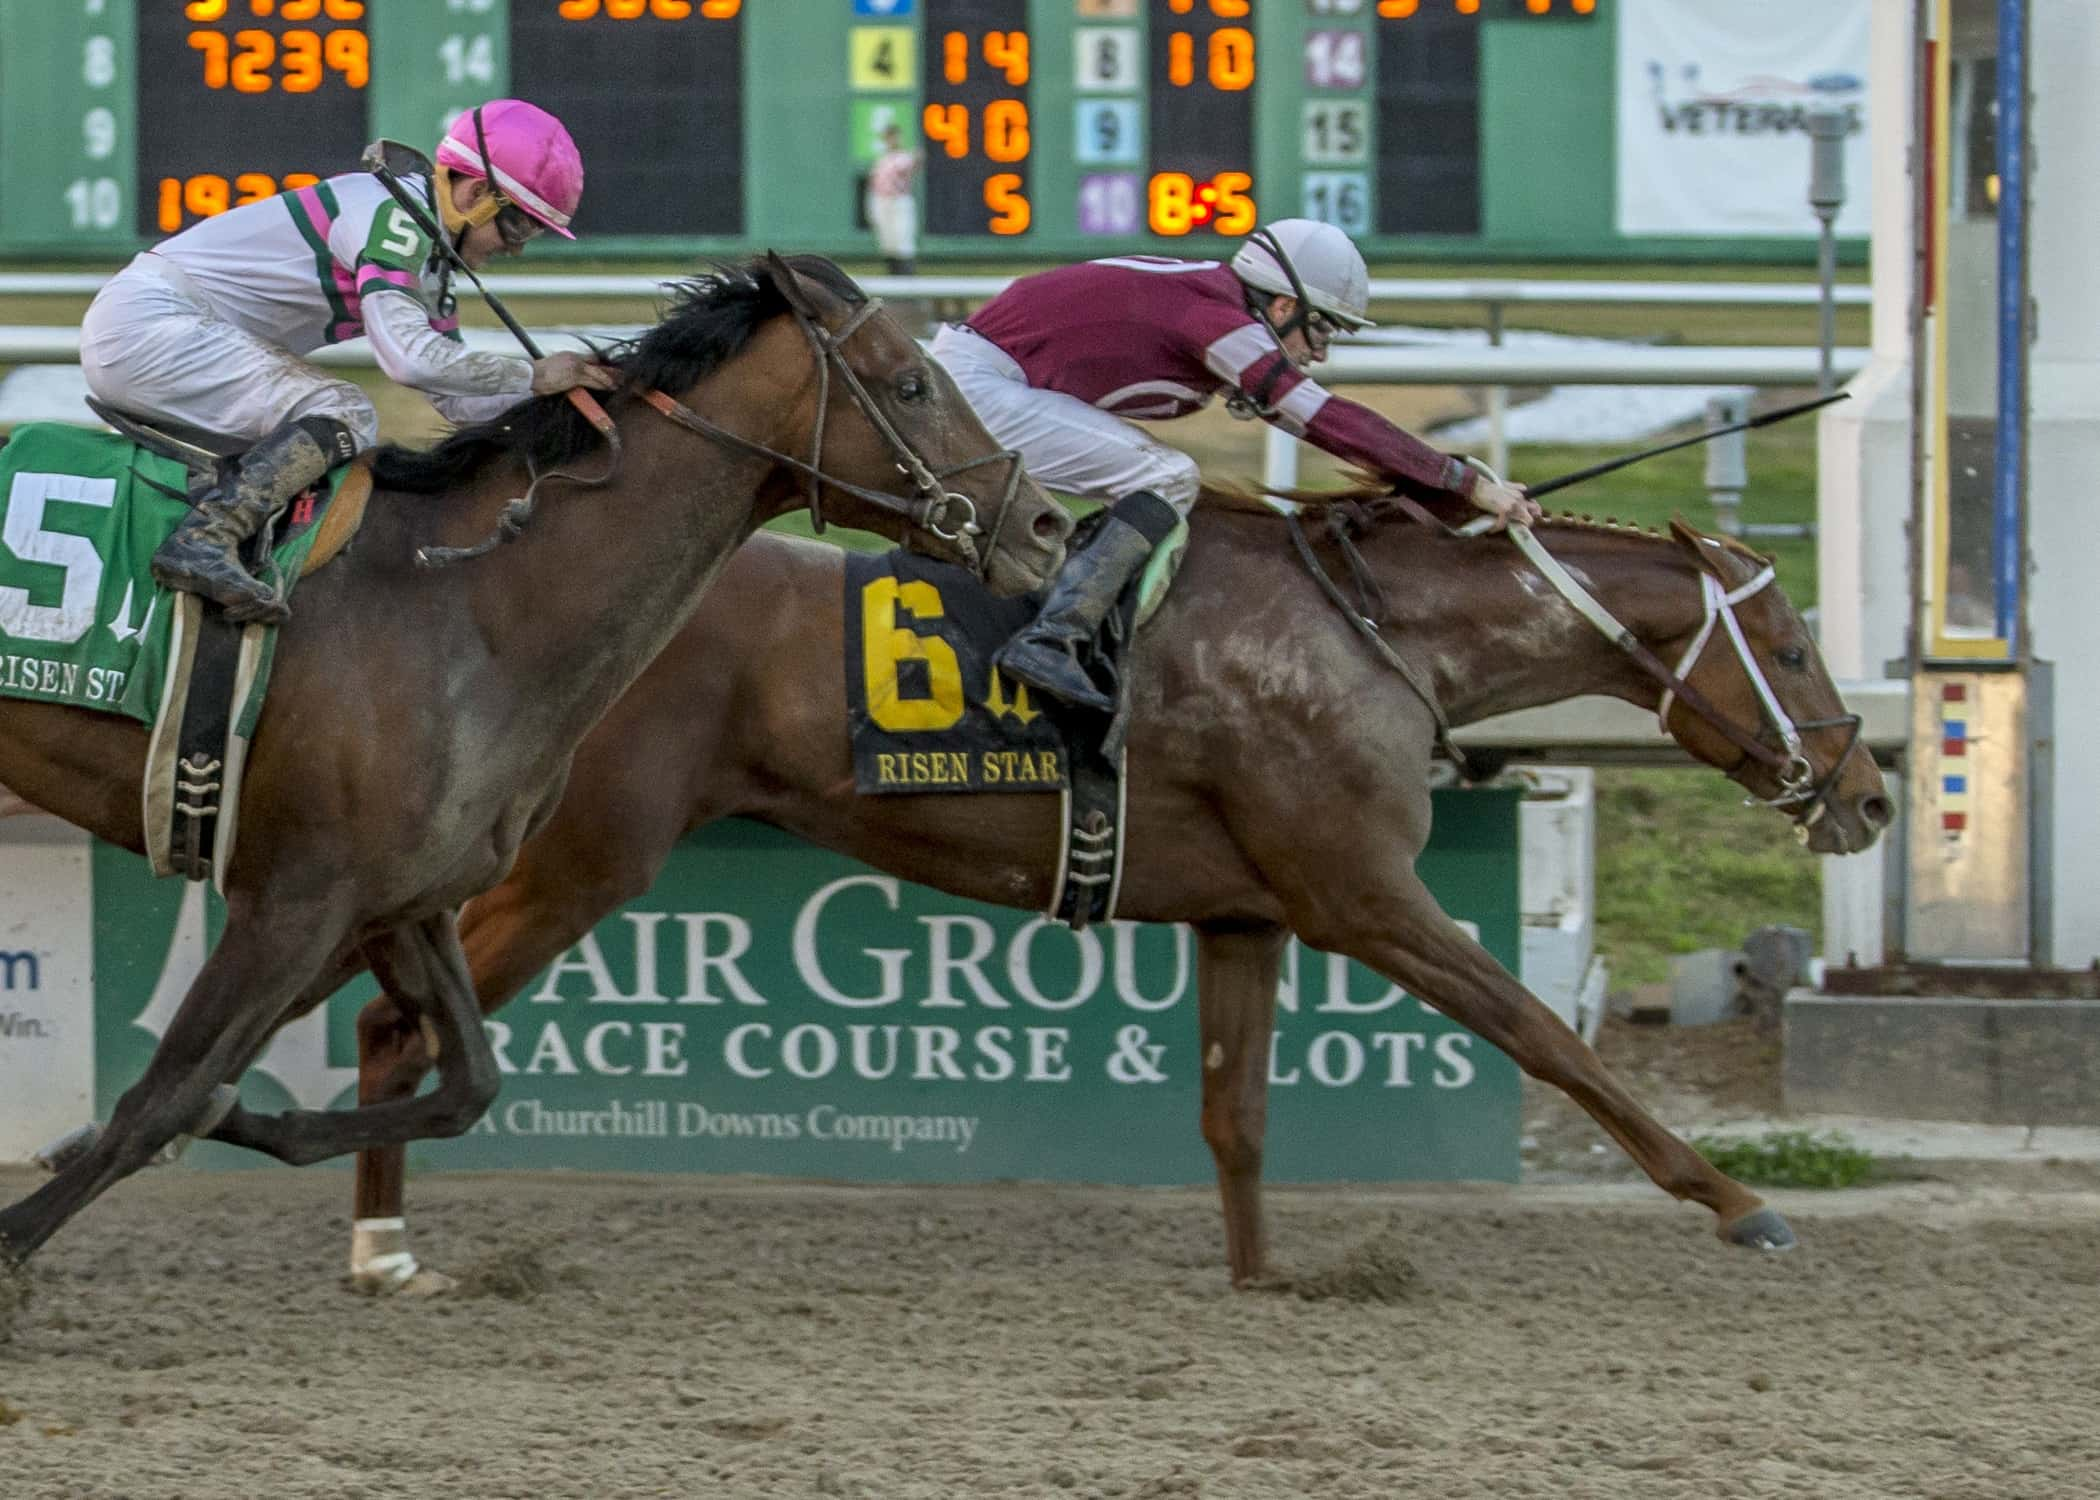 Gun Runner, No 6, with jockey Shaun Bridgmohan aboard, drives to the wire to win the Risen Star Stakes (GrII) at the Fair Grounds Race Course in New Orleans, LA Saturday, February 20, 2016. Photo By Lou Hodges, Jr. / Hodges Photography